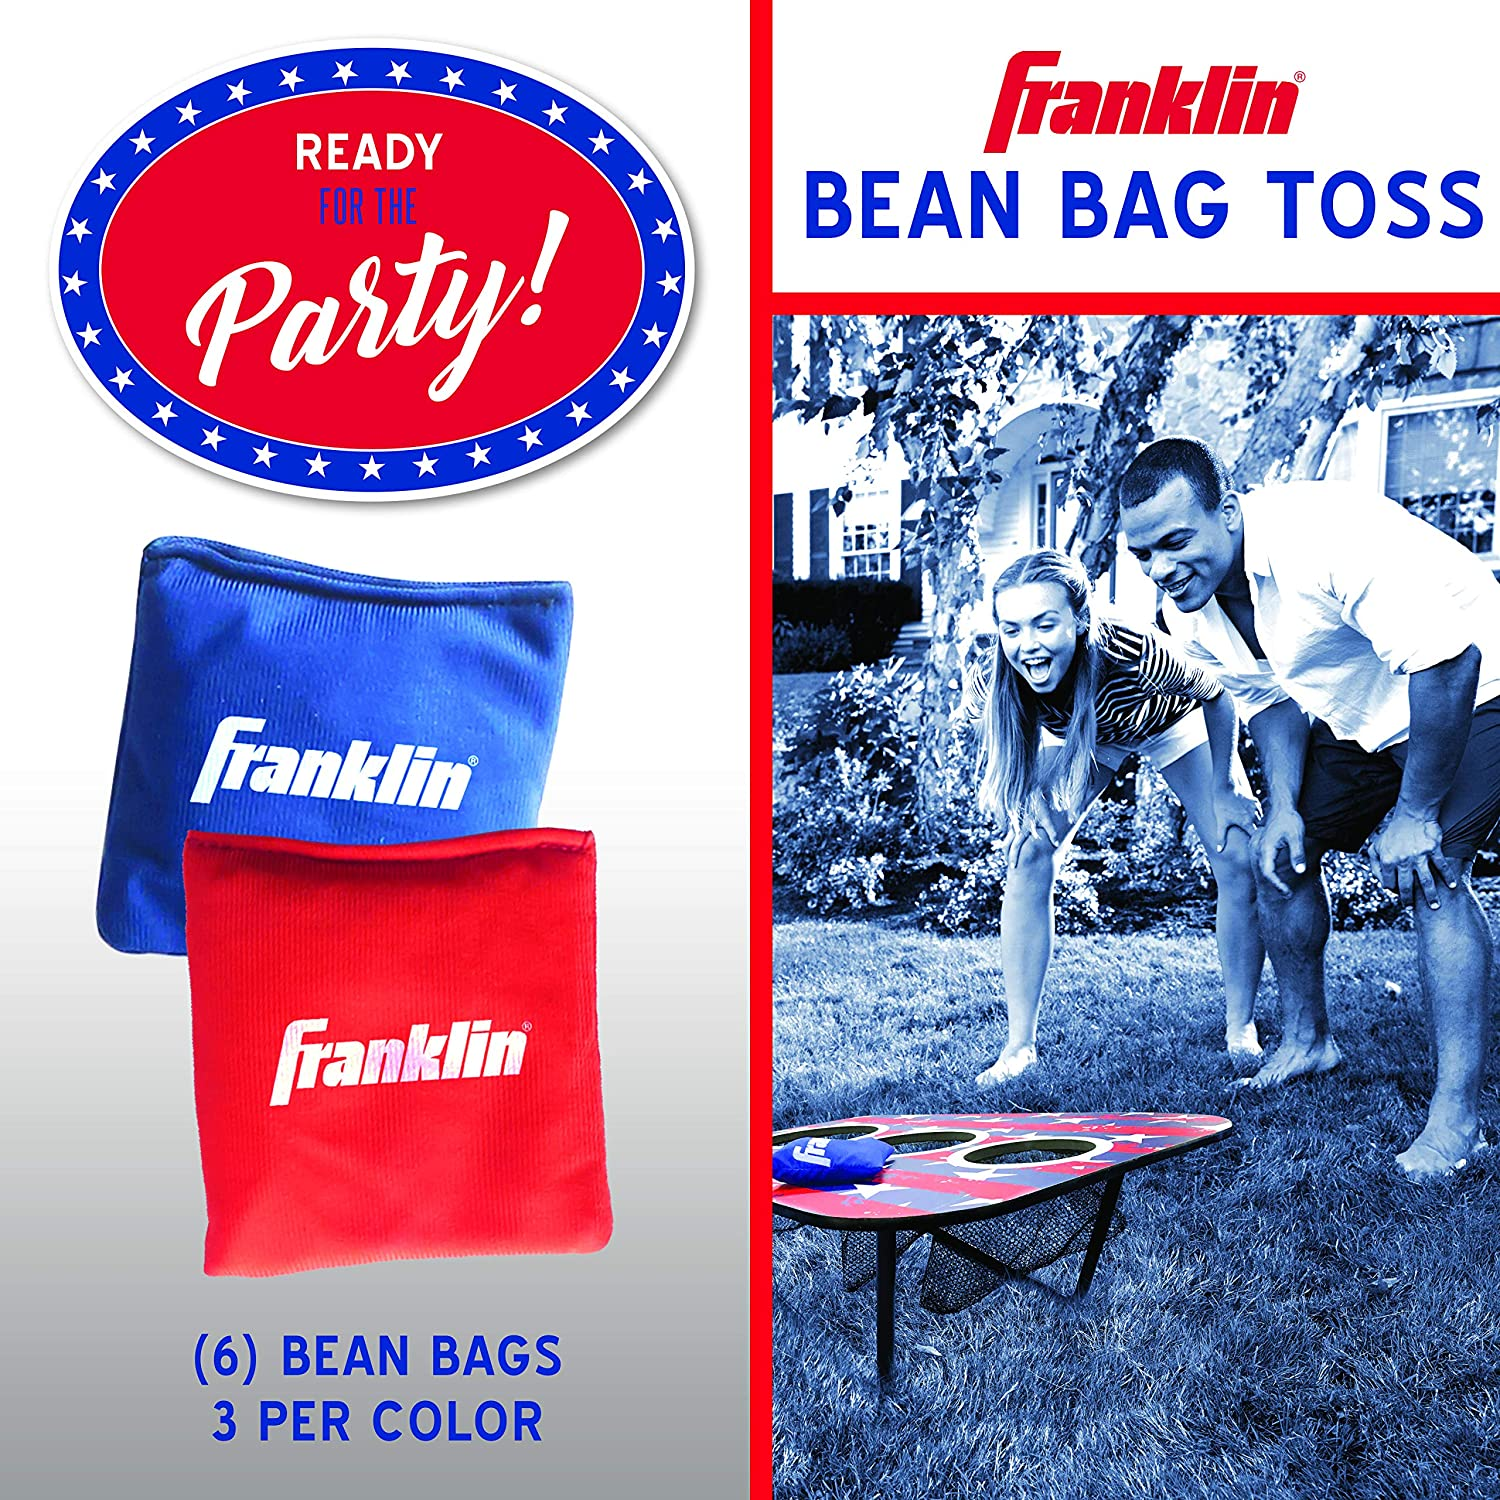 Phenomenal Franklin Sports Bean Bag Toss Yard Game 3 Hole Cornhole Board Set Red White And Blue With 6 Bean Bags Machost Co Dining Chair Design Ideas Machostcouk